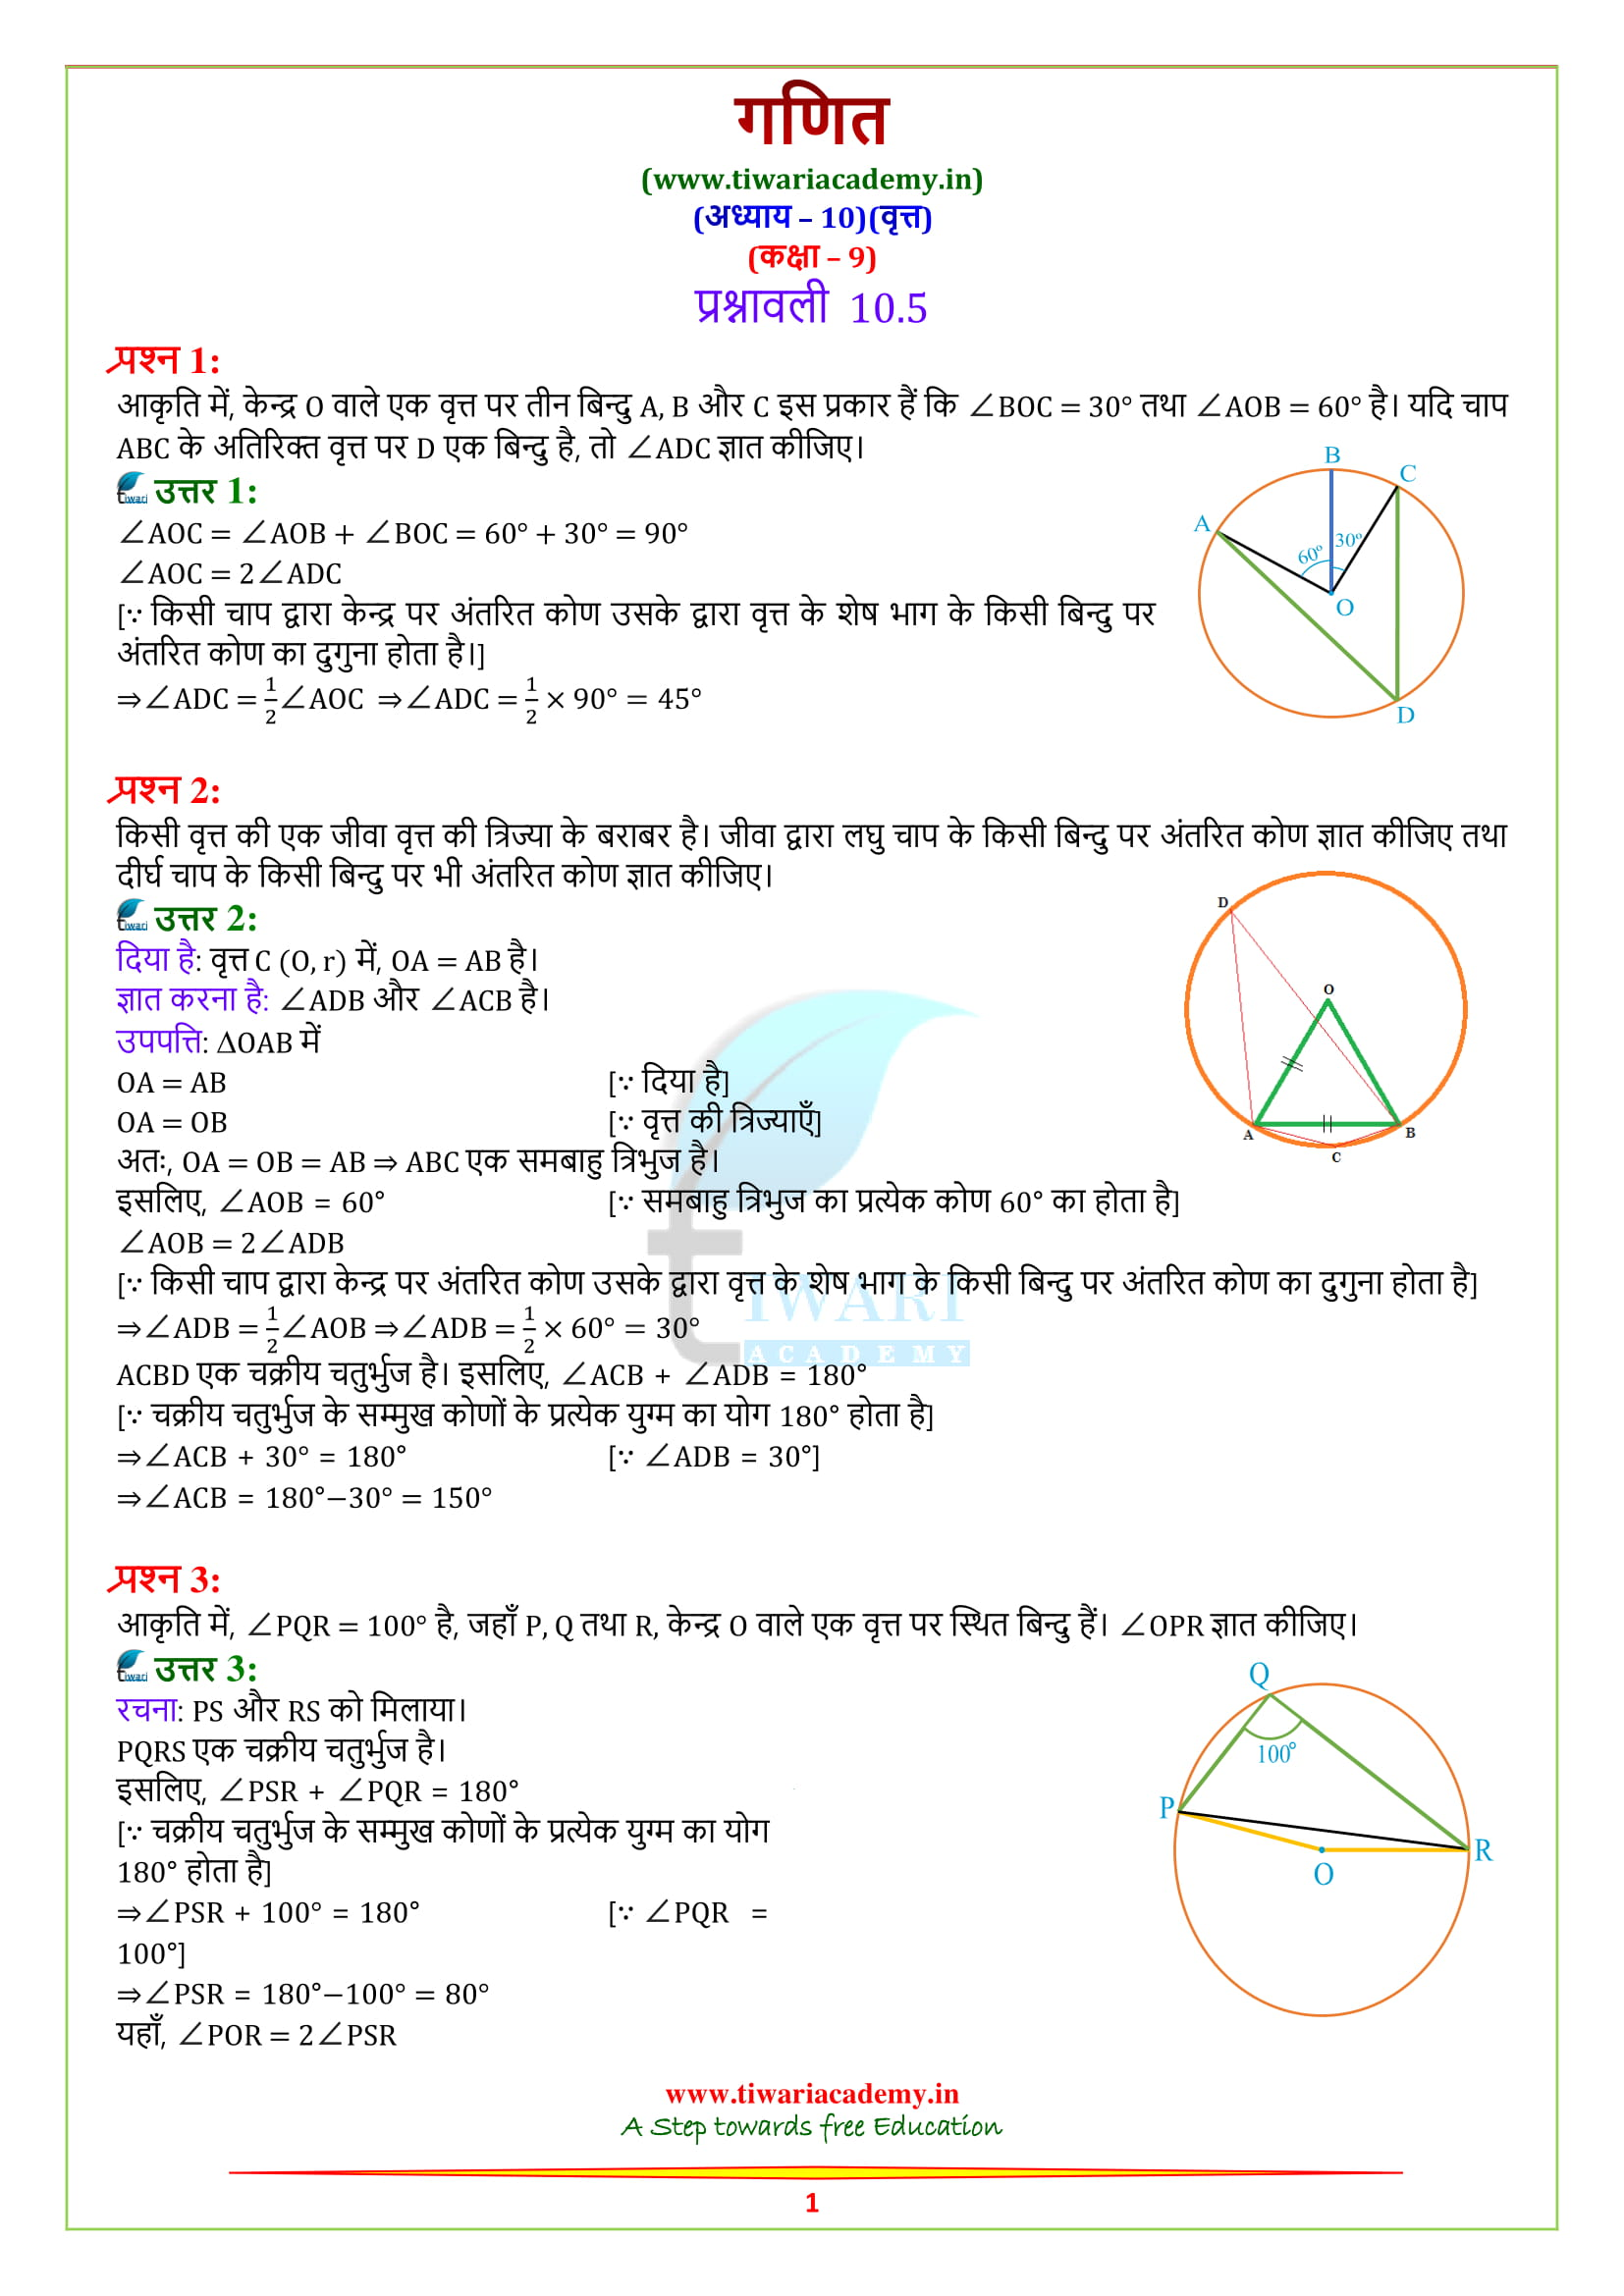 9 Maths Exercise 10.5 solutions in hindi